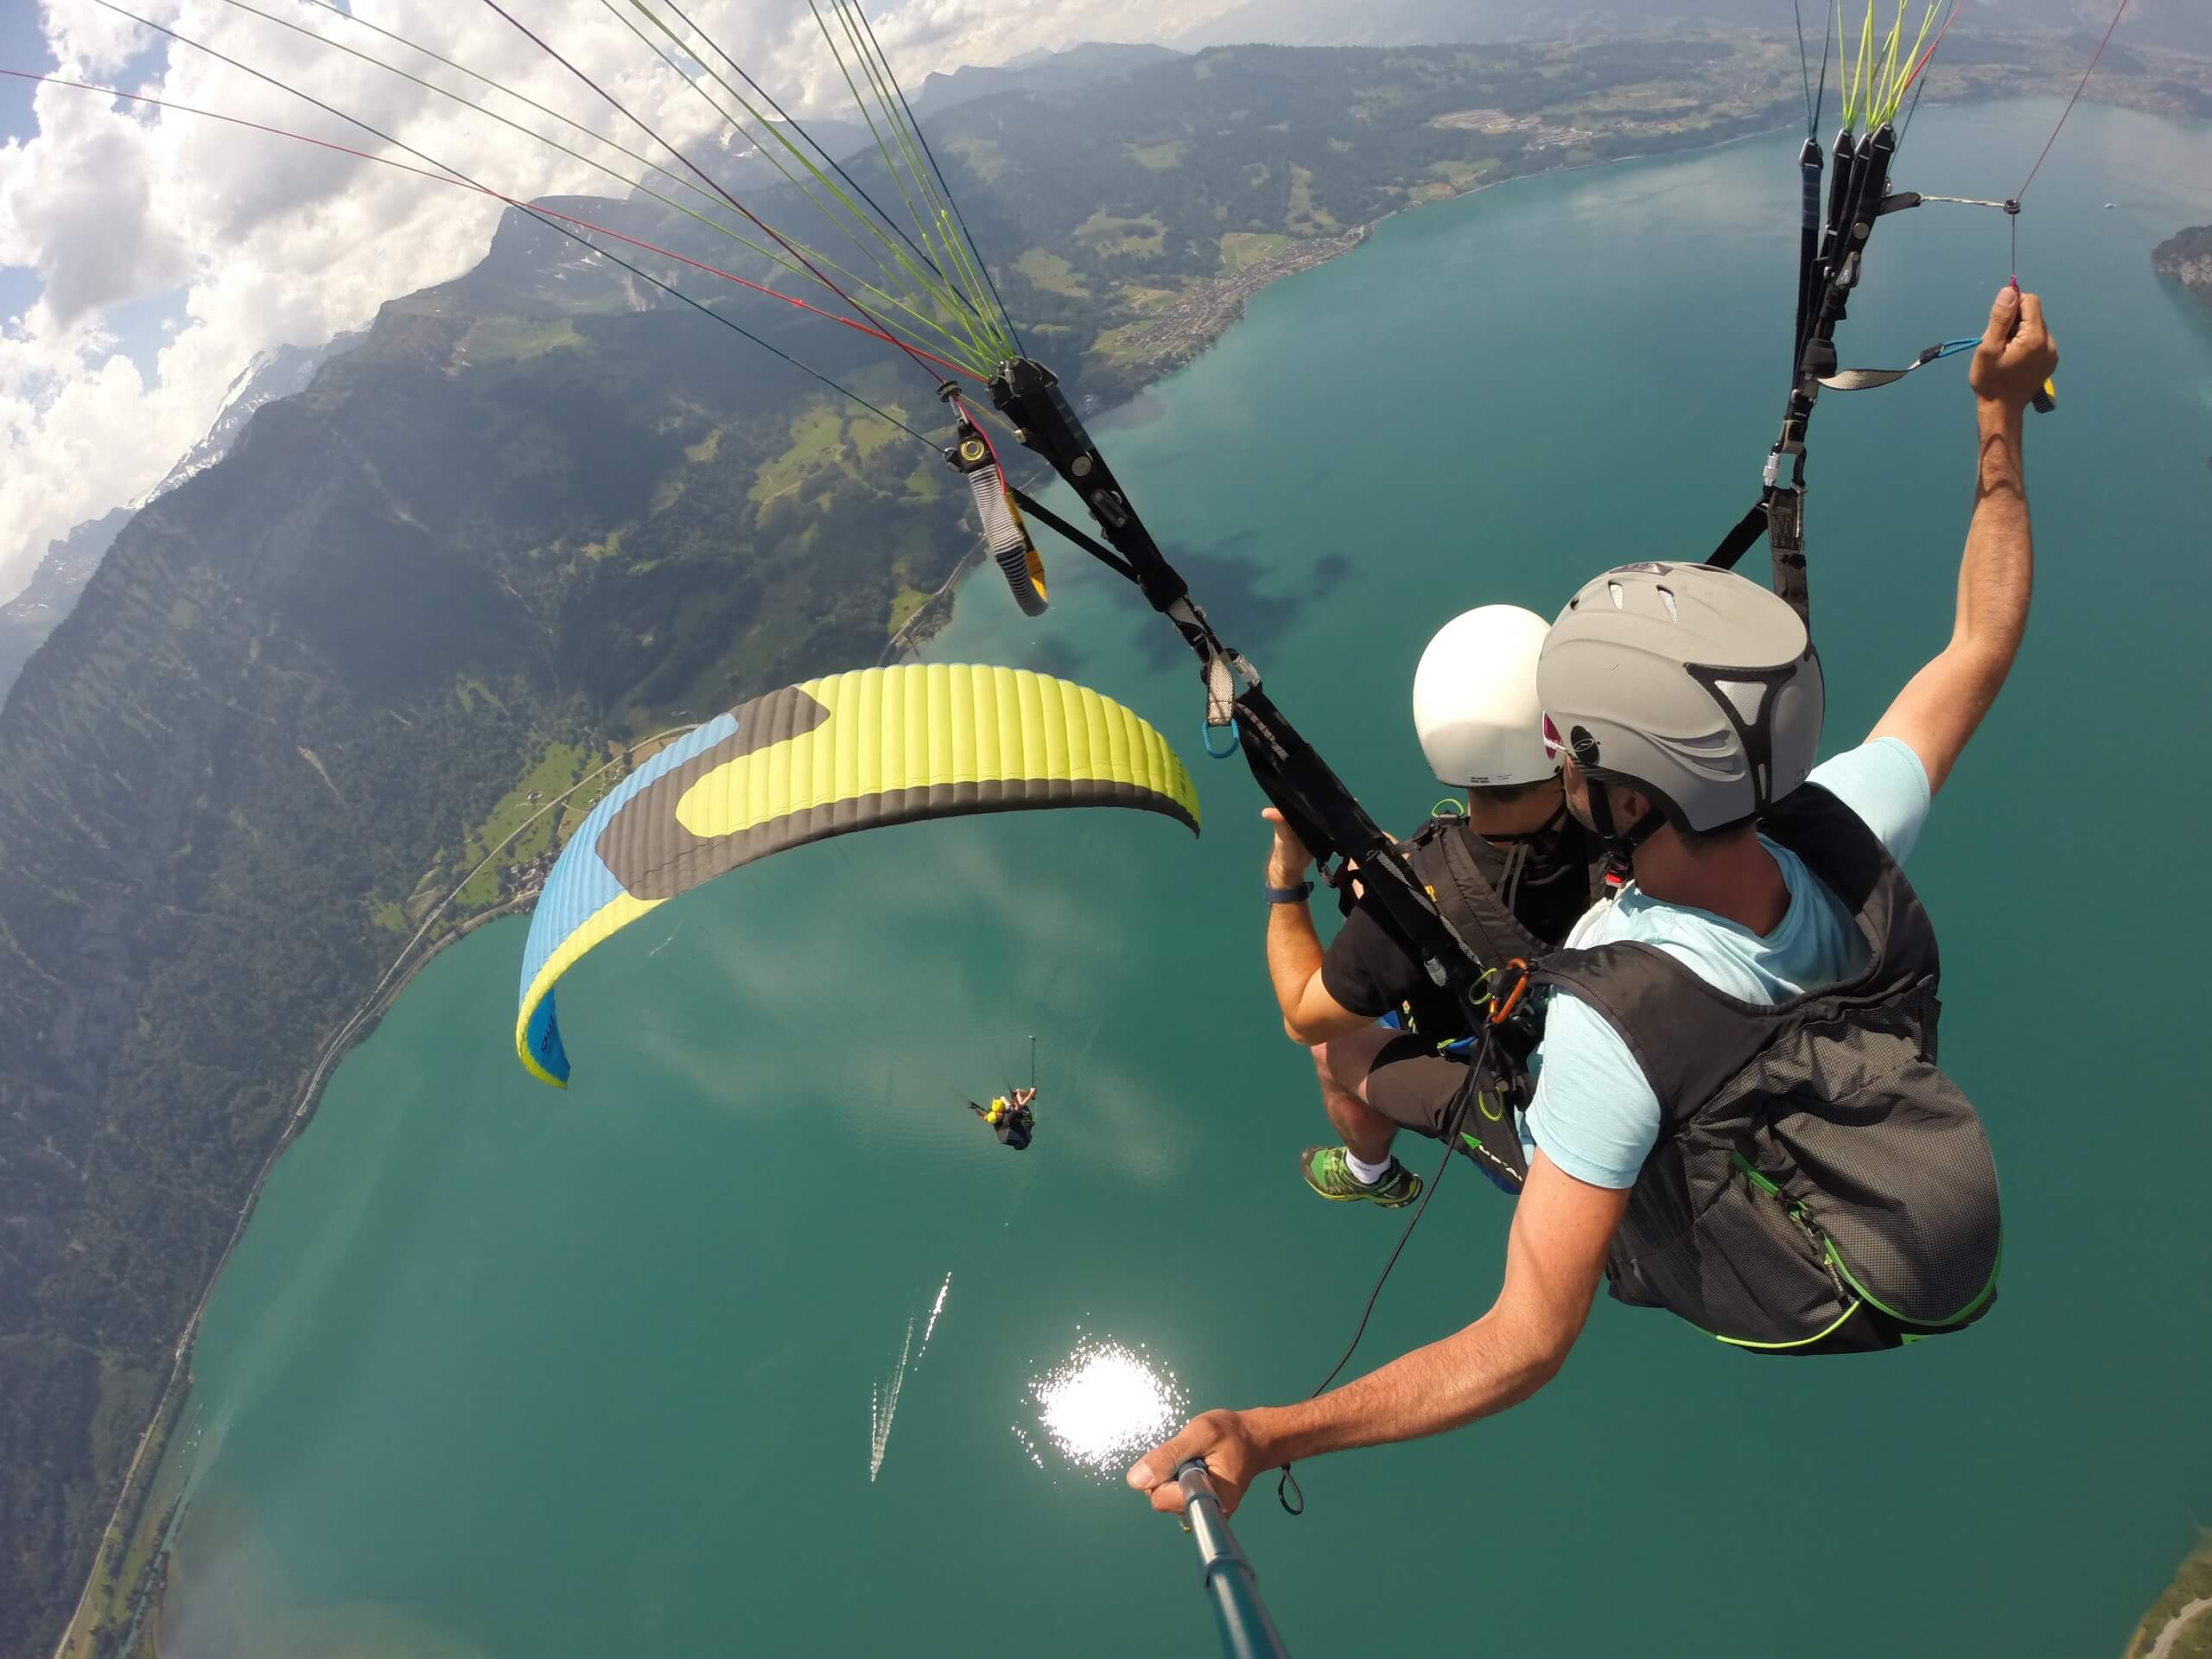 interlaken-twin-paragliding-seen-panorama